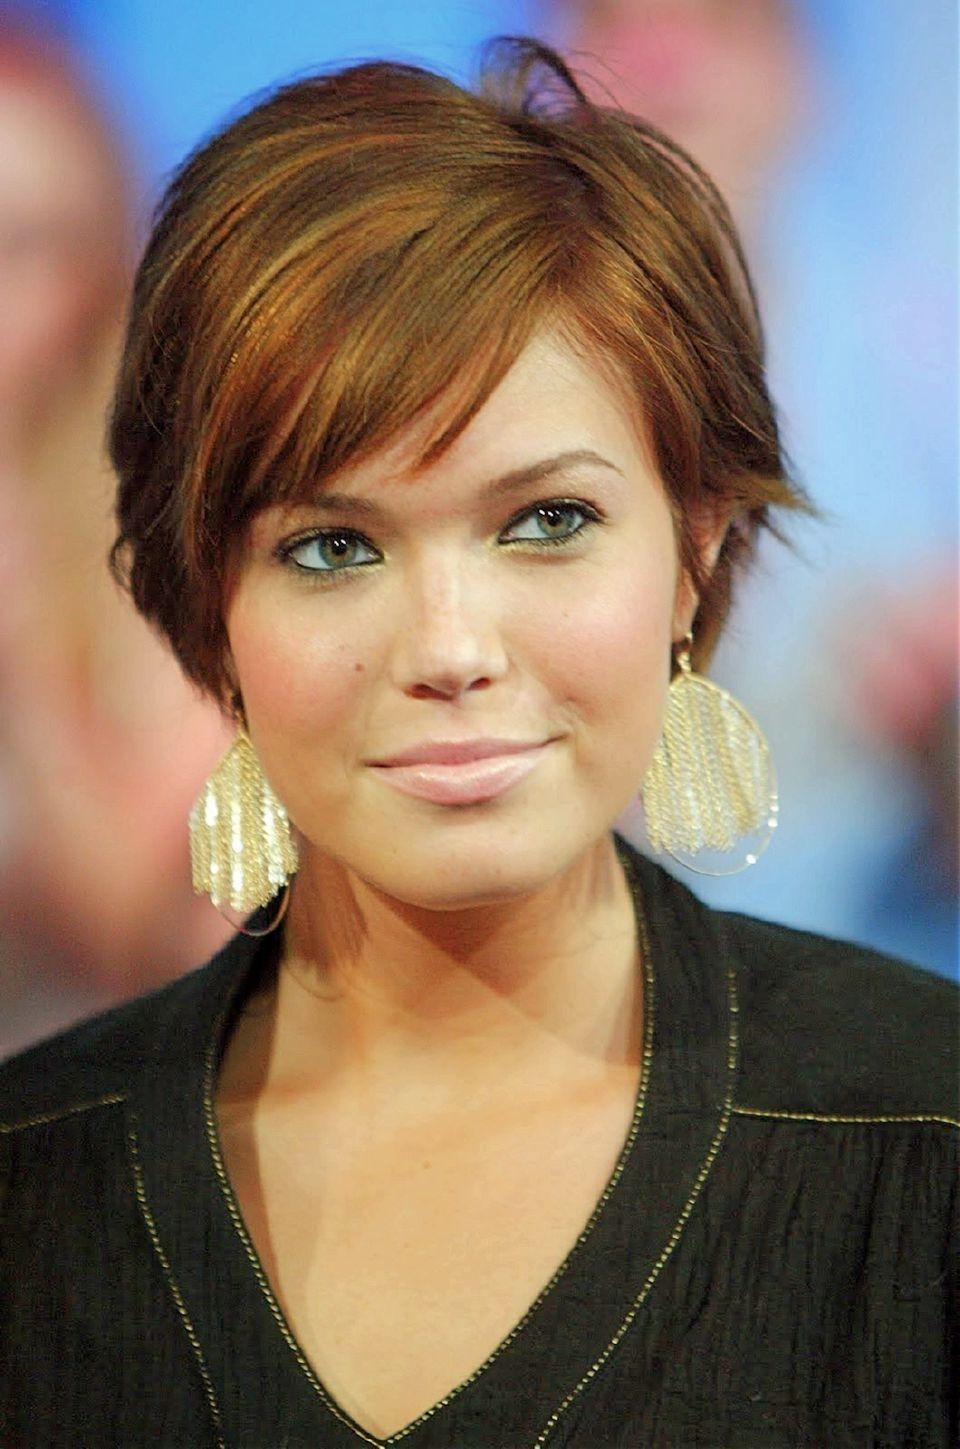 Double chins short hairstyles for round faces with double chin short